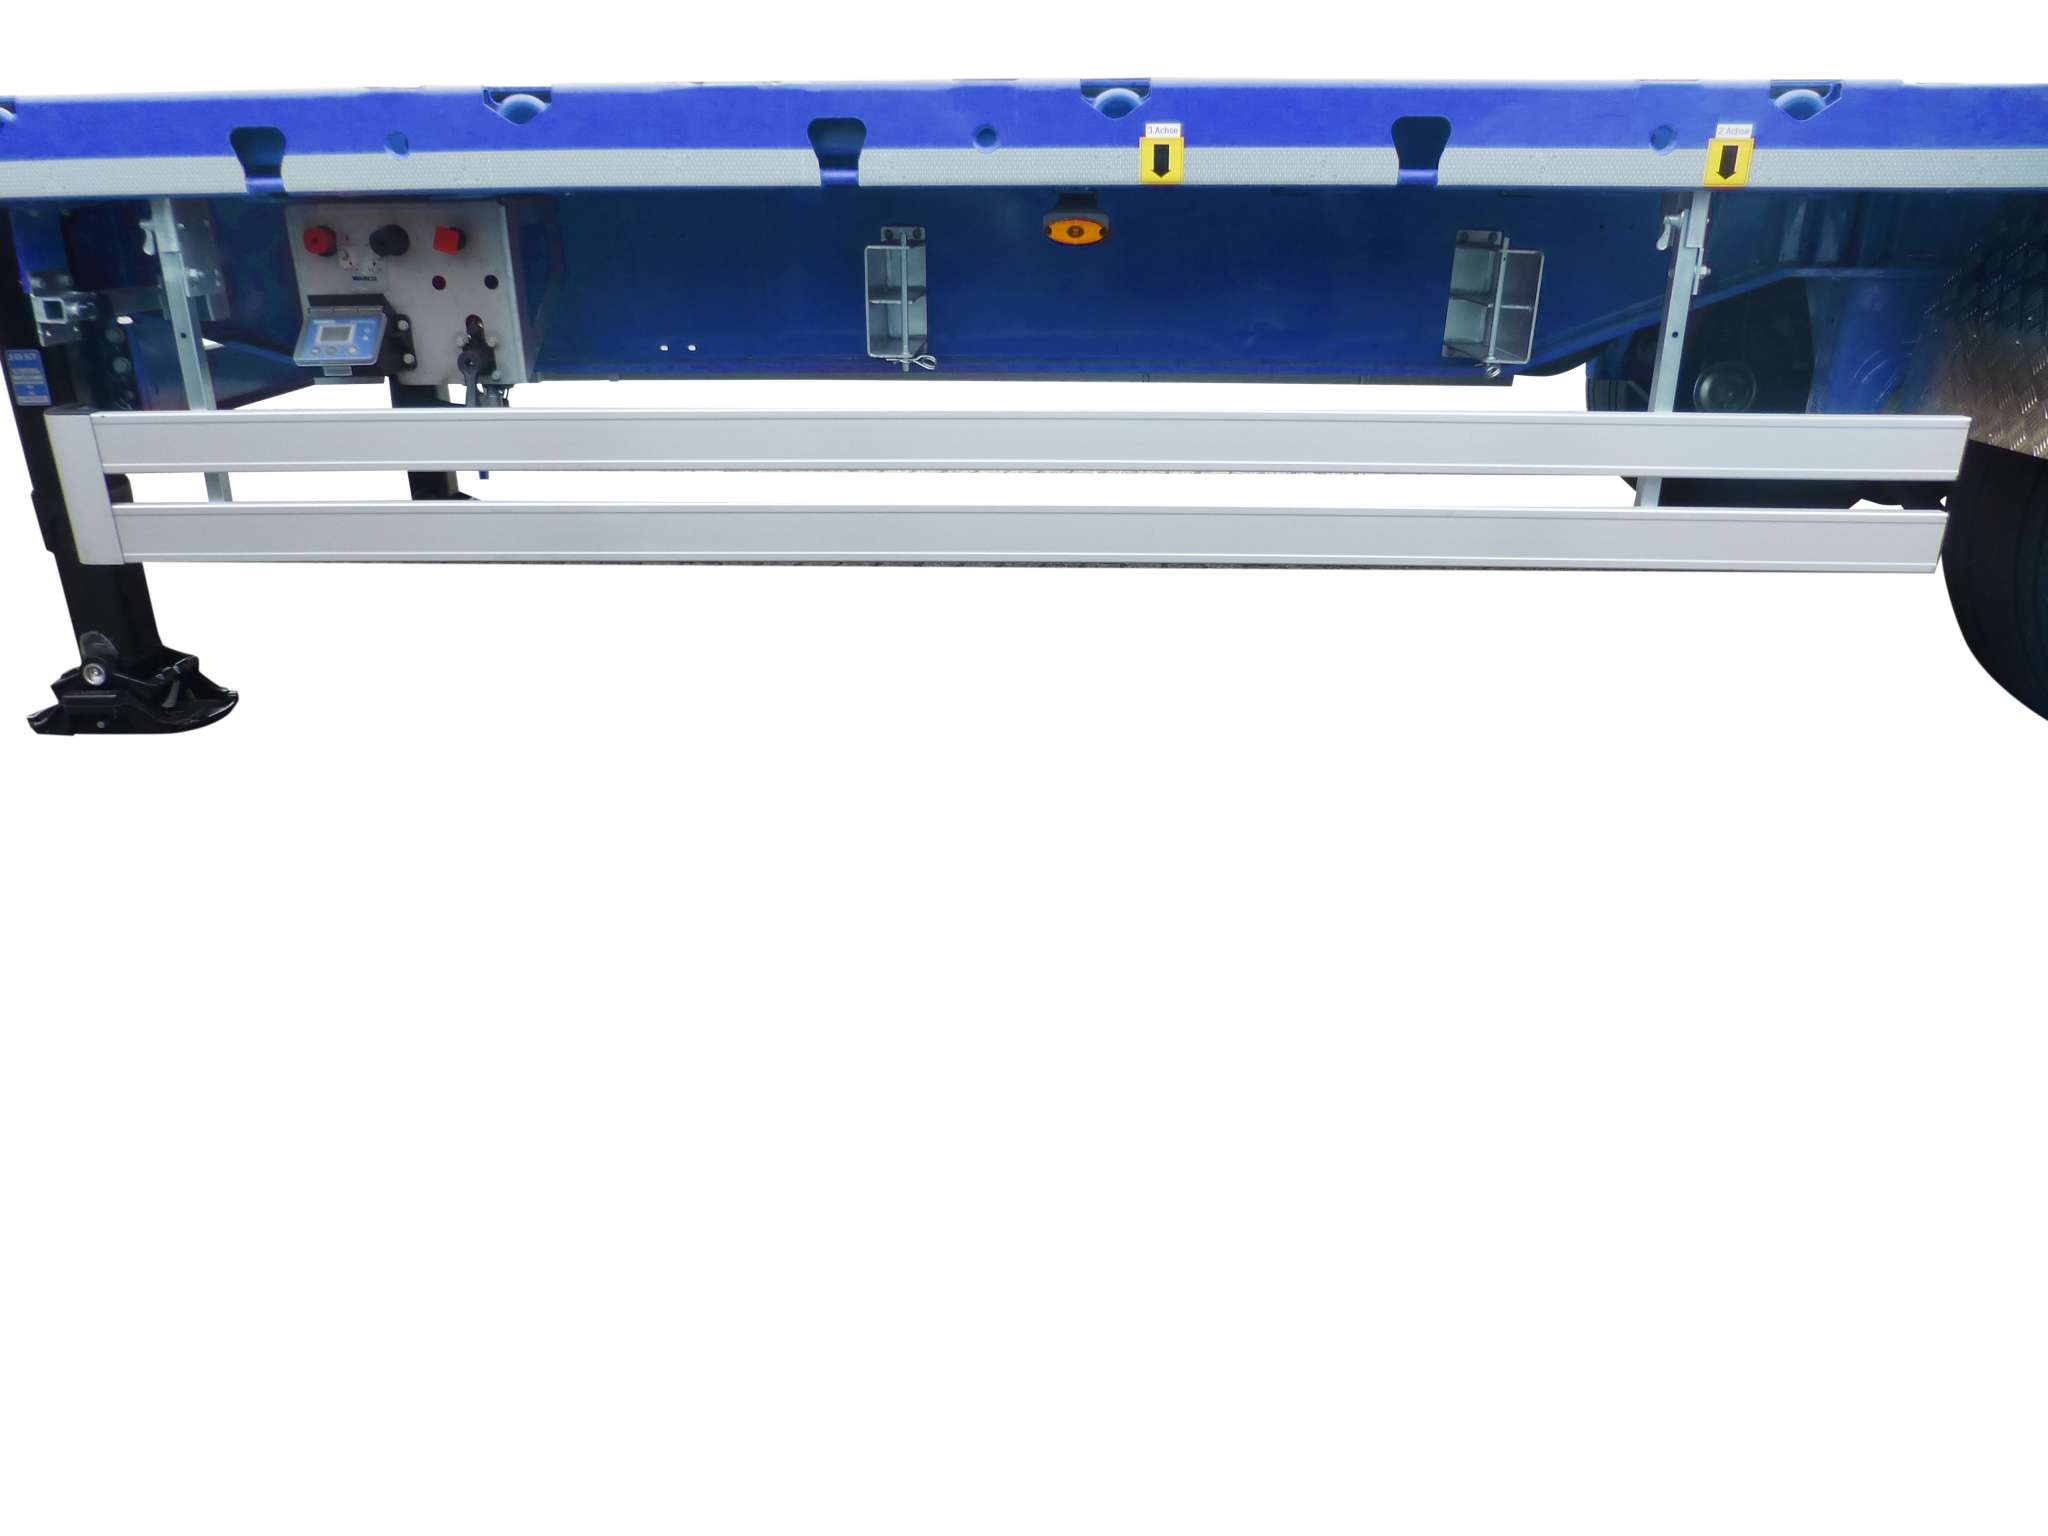 3-axle flatbed mega trailer with 2 king pin heights